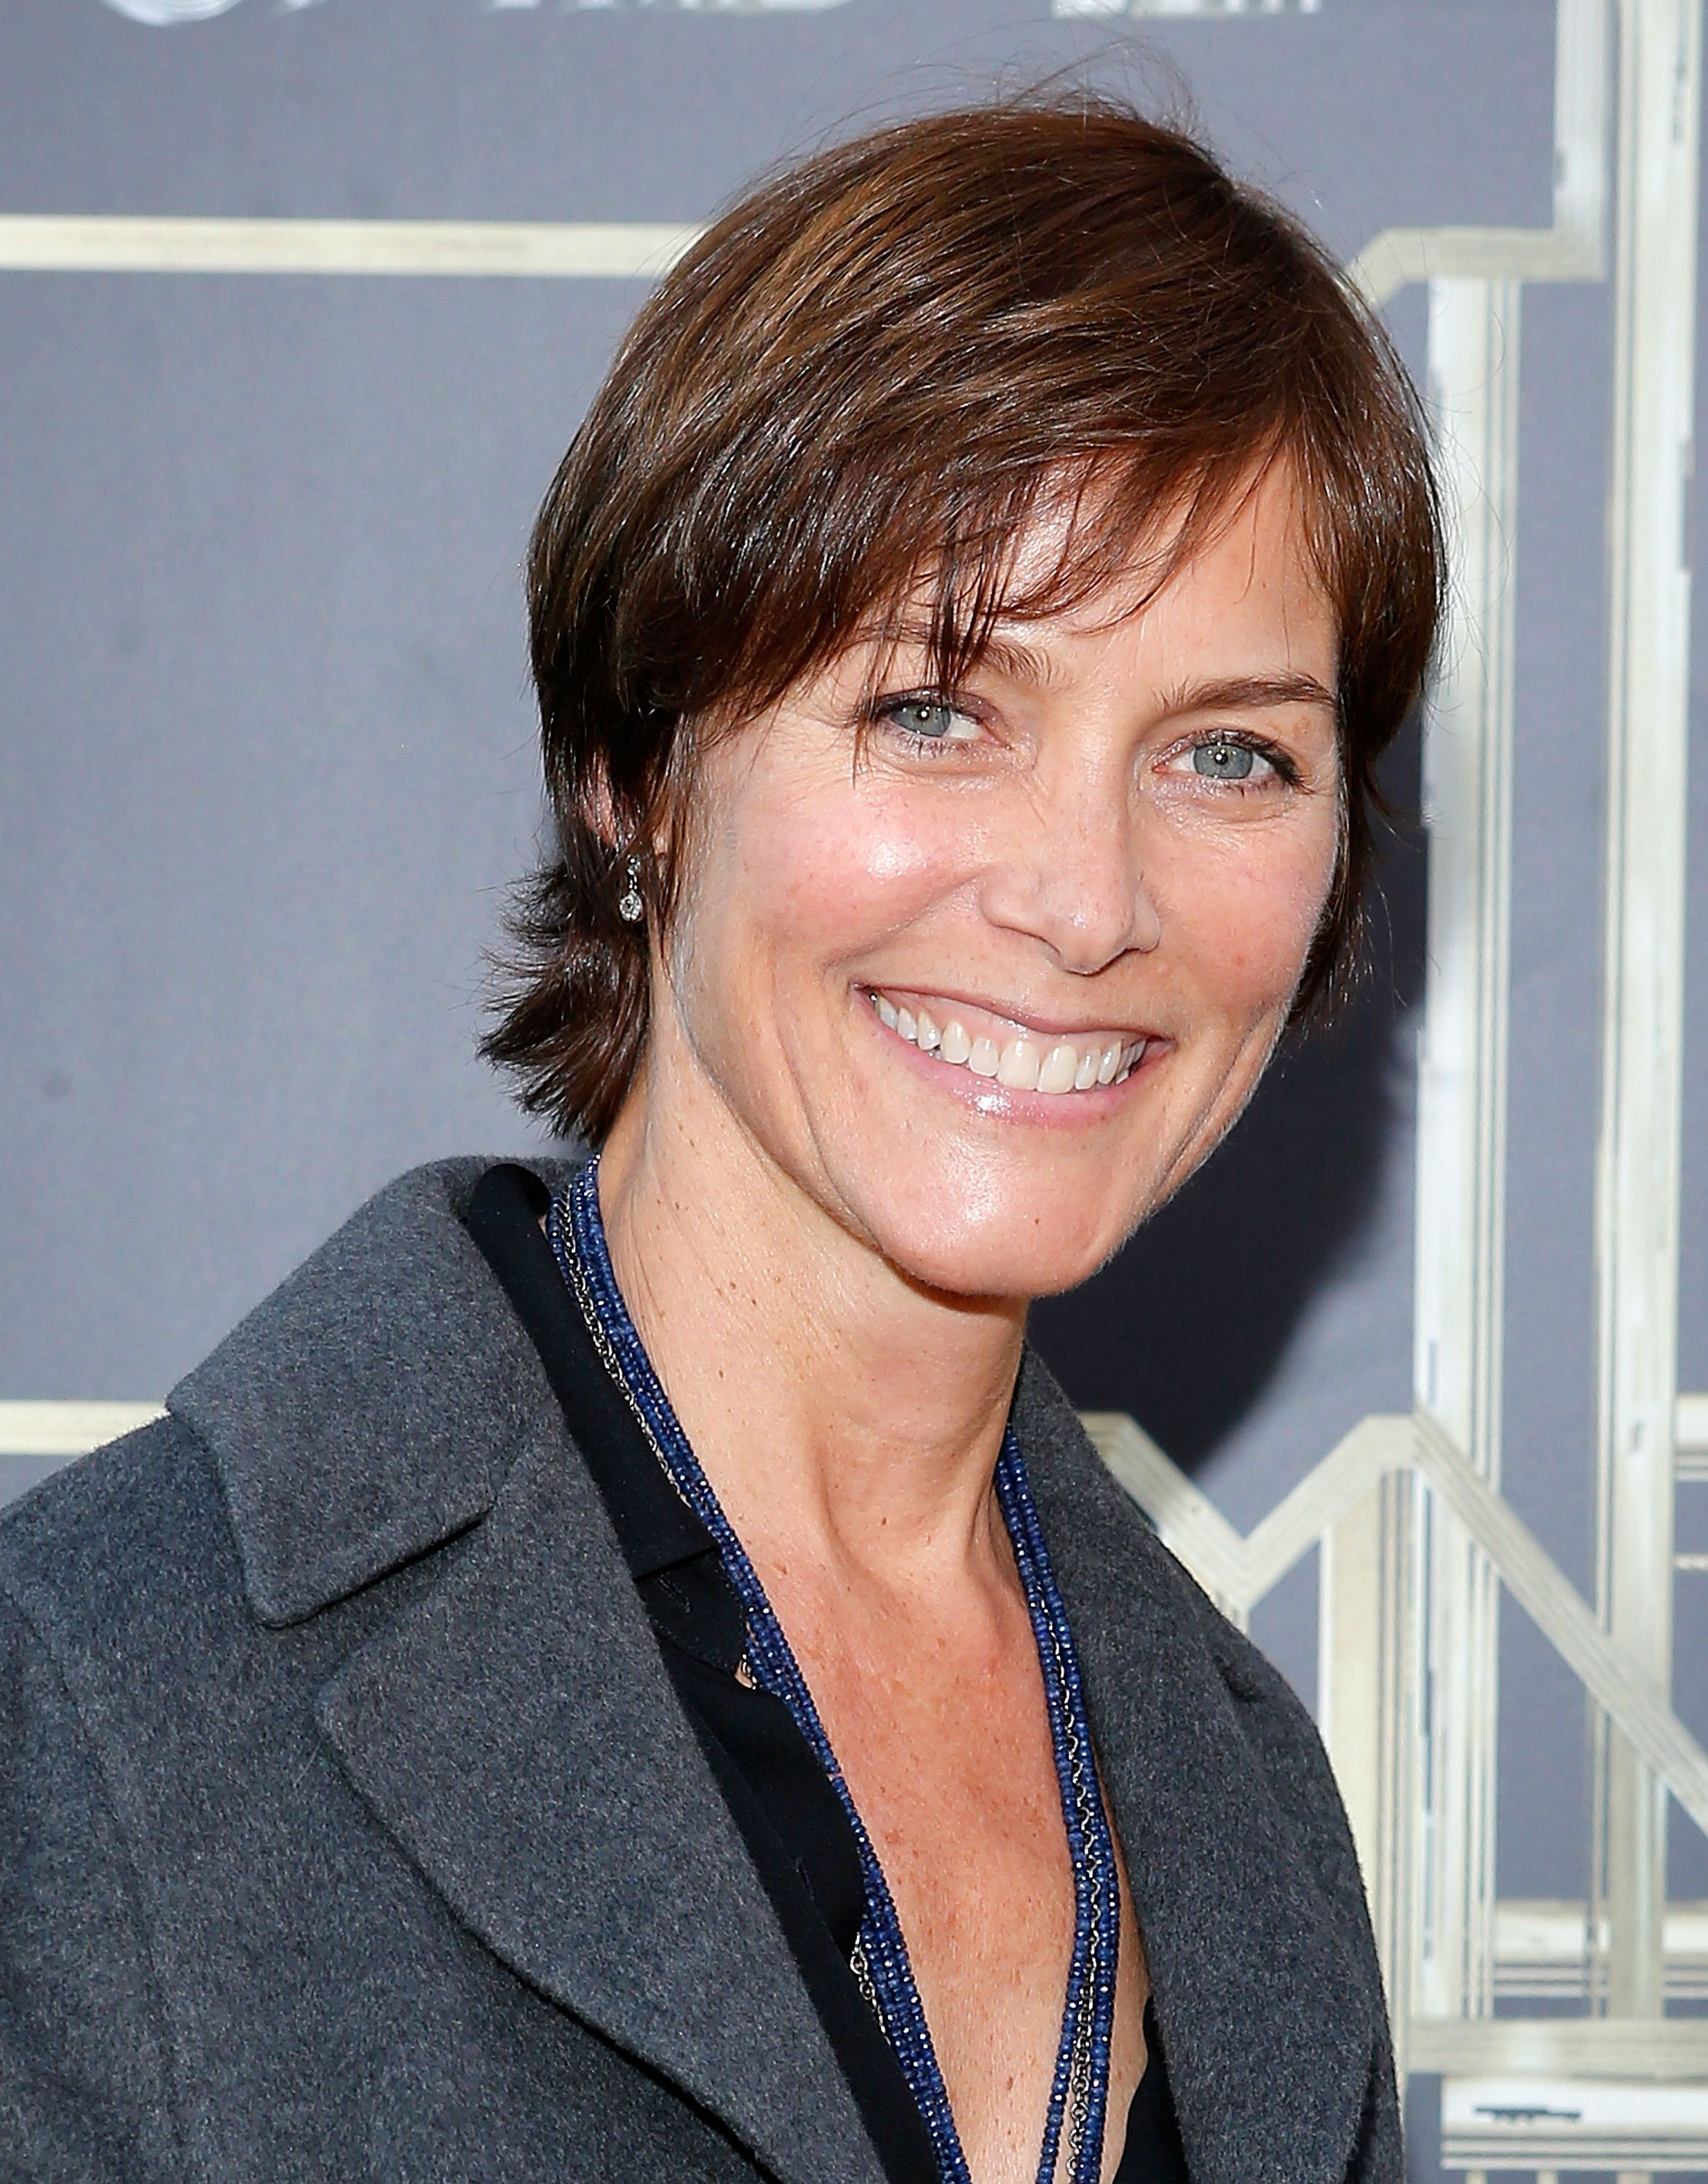 """Actress Carey Lowell attends """"The Great Gatsby"""" world premiere at Avery Fisher Hall at Lincoln Center for the Performing Arts on May 1, 2013, in New York City. 